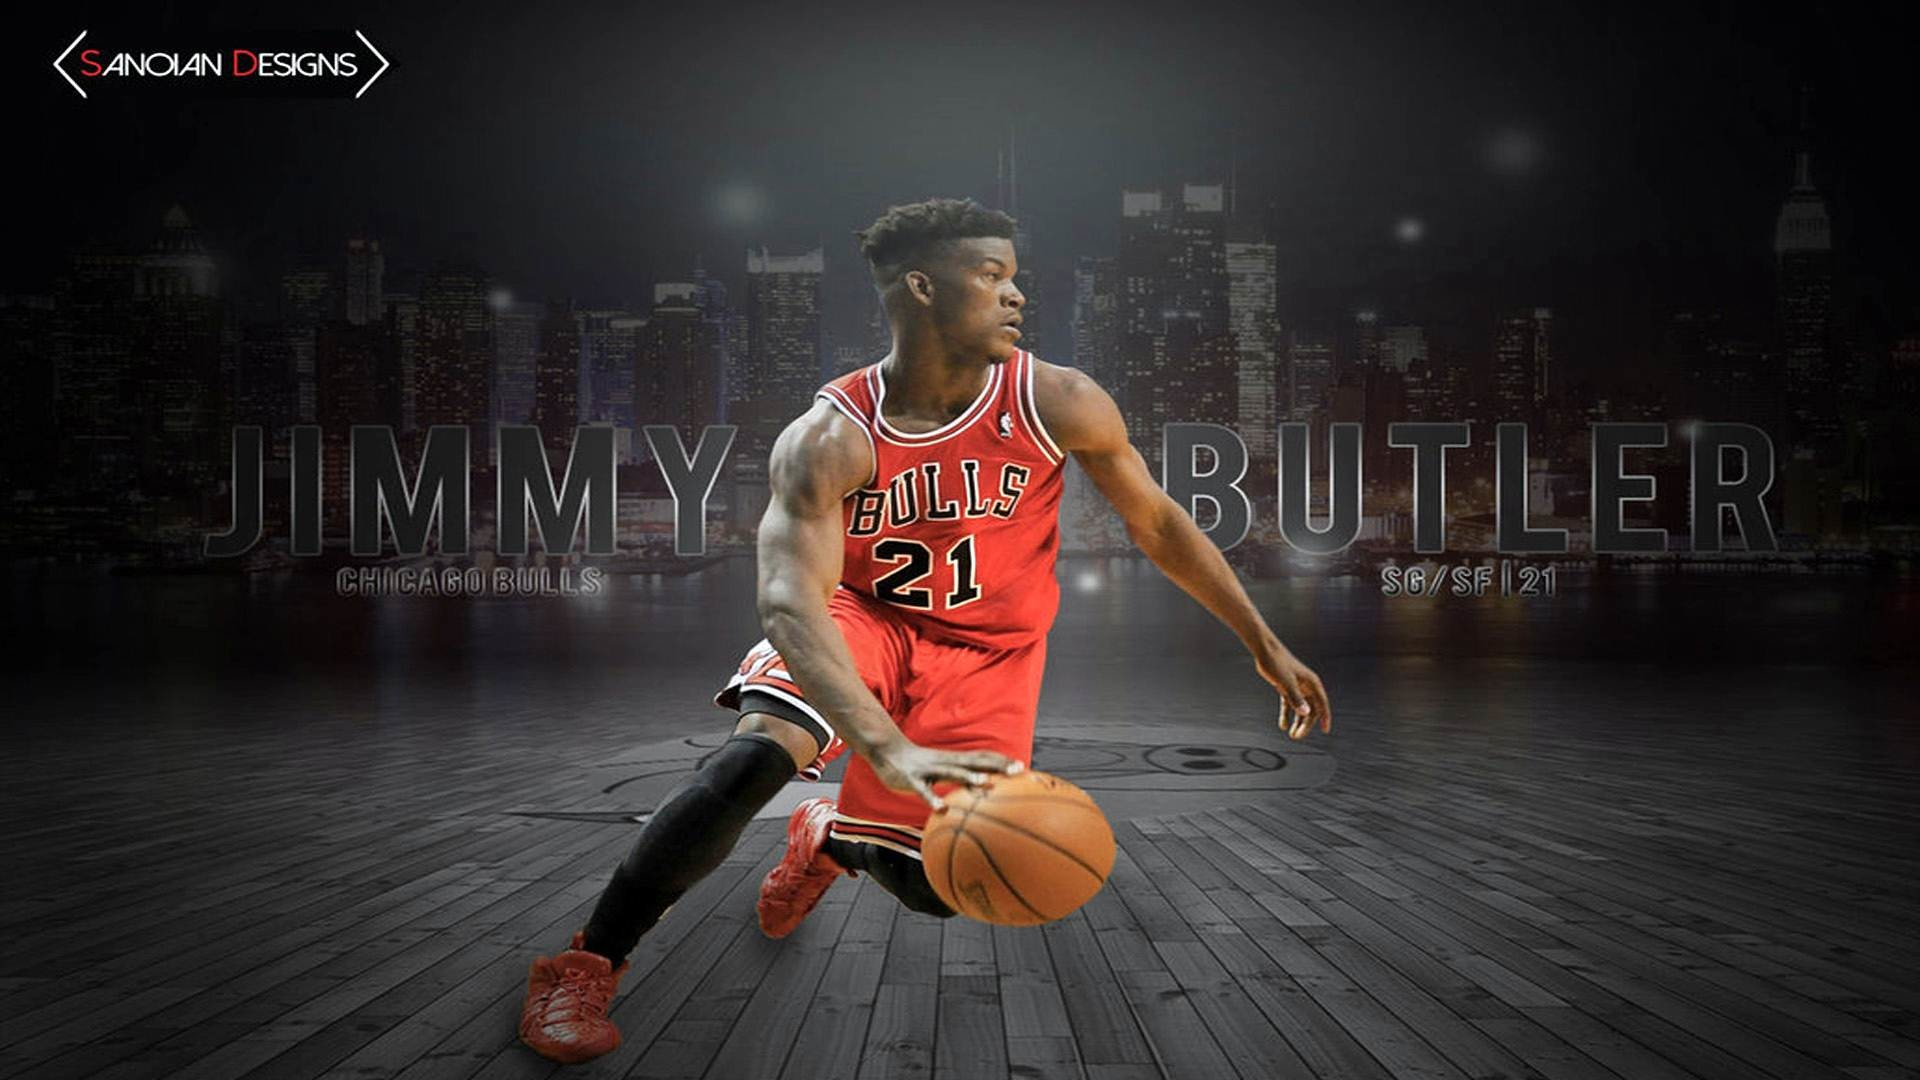 Jimmy Butler Wallpapers High Resolution and Quality Download